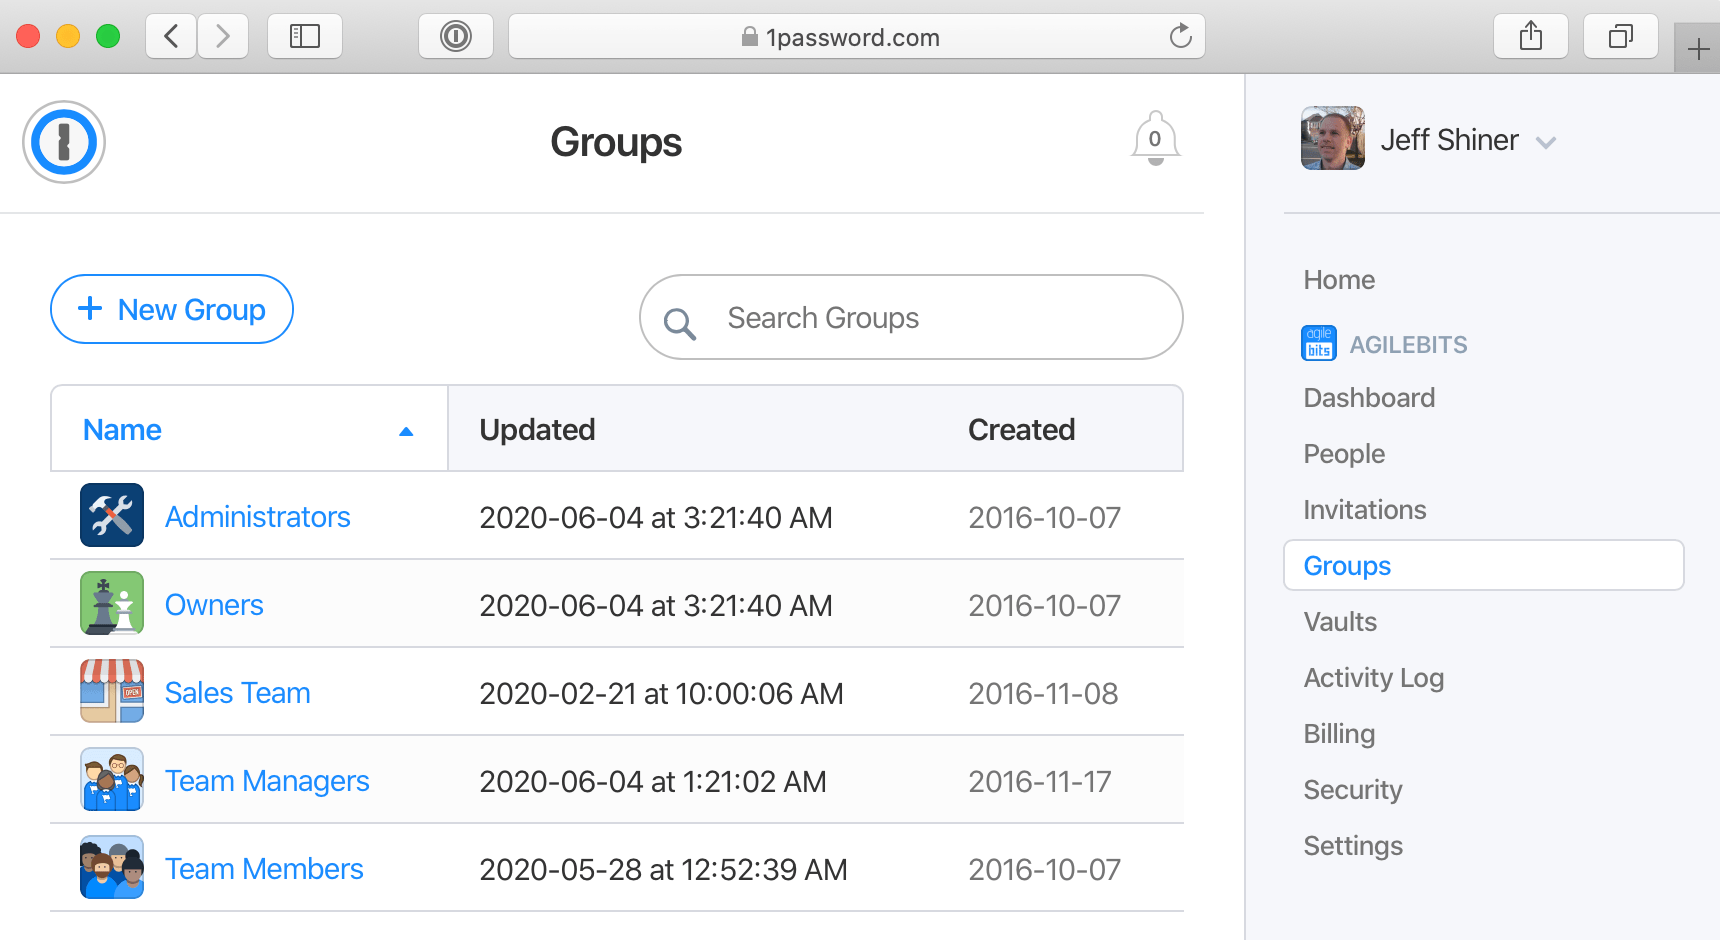 List of groups on 1Password.com